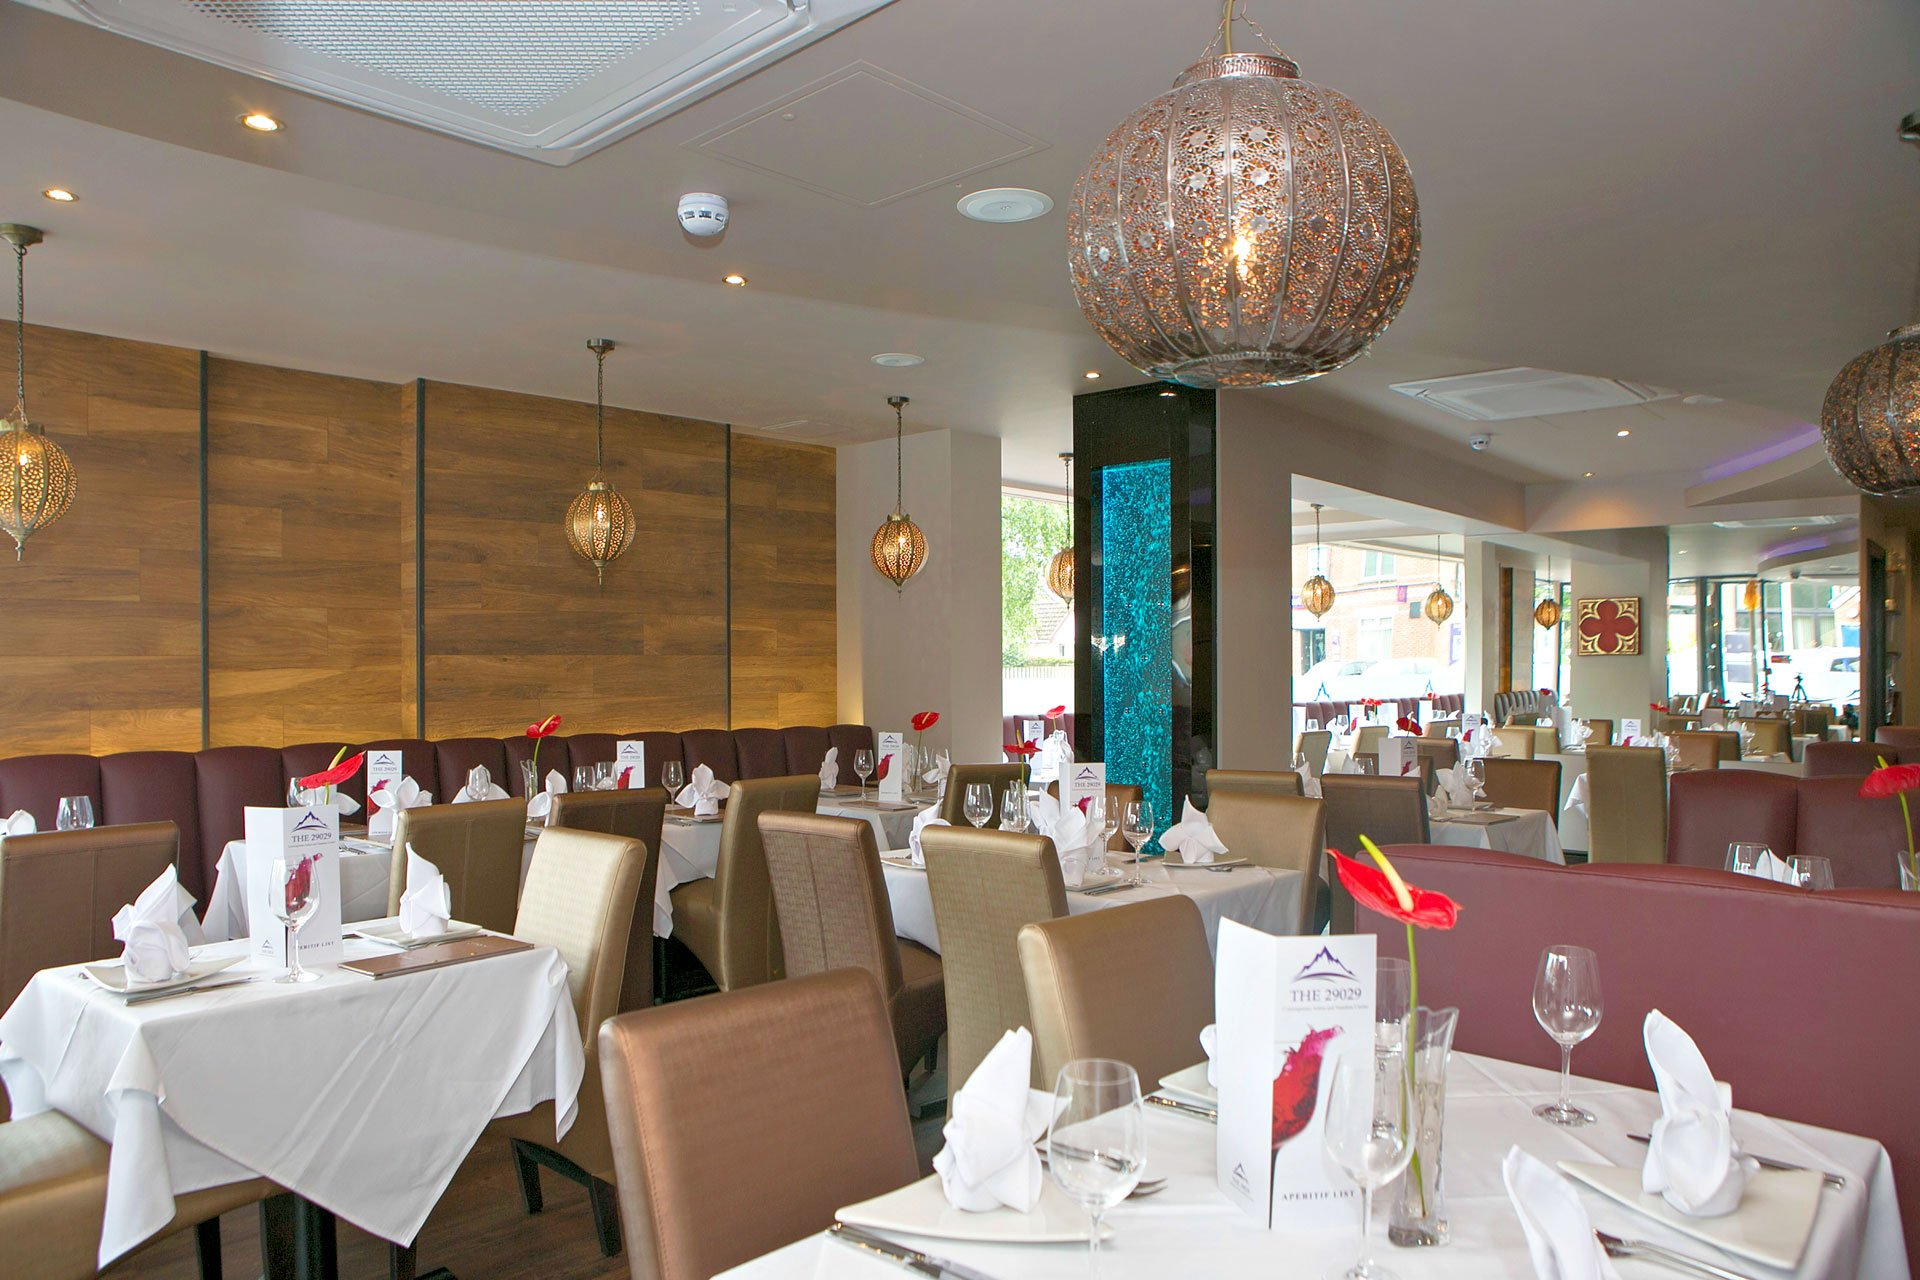 Lunch - The 29029 Restaurant Broadstone - Indian and Nepalese cuisine in Broadstone Poole